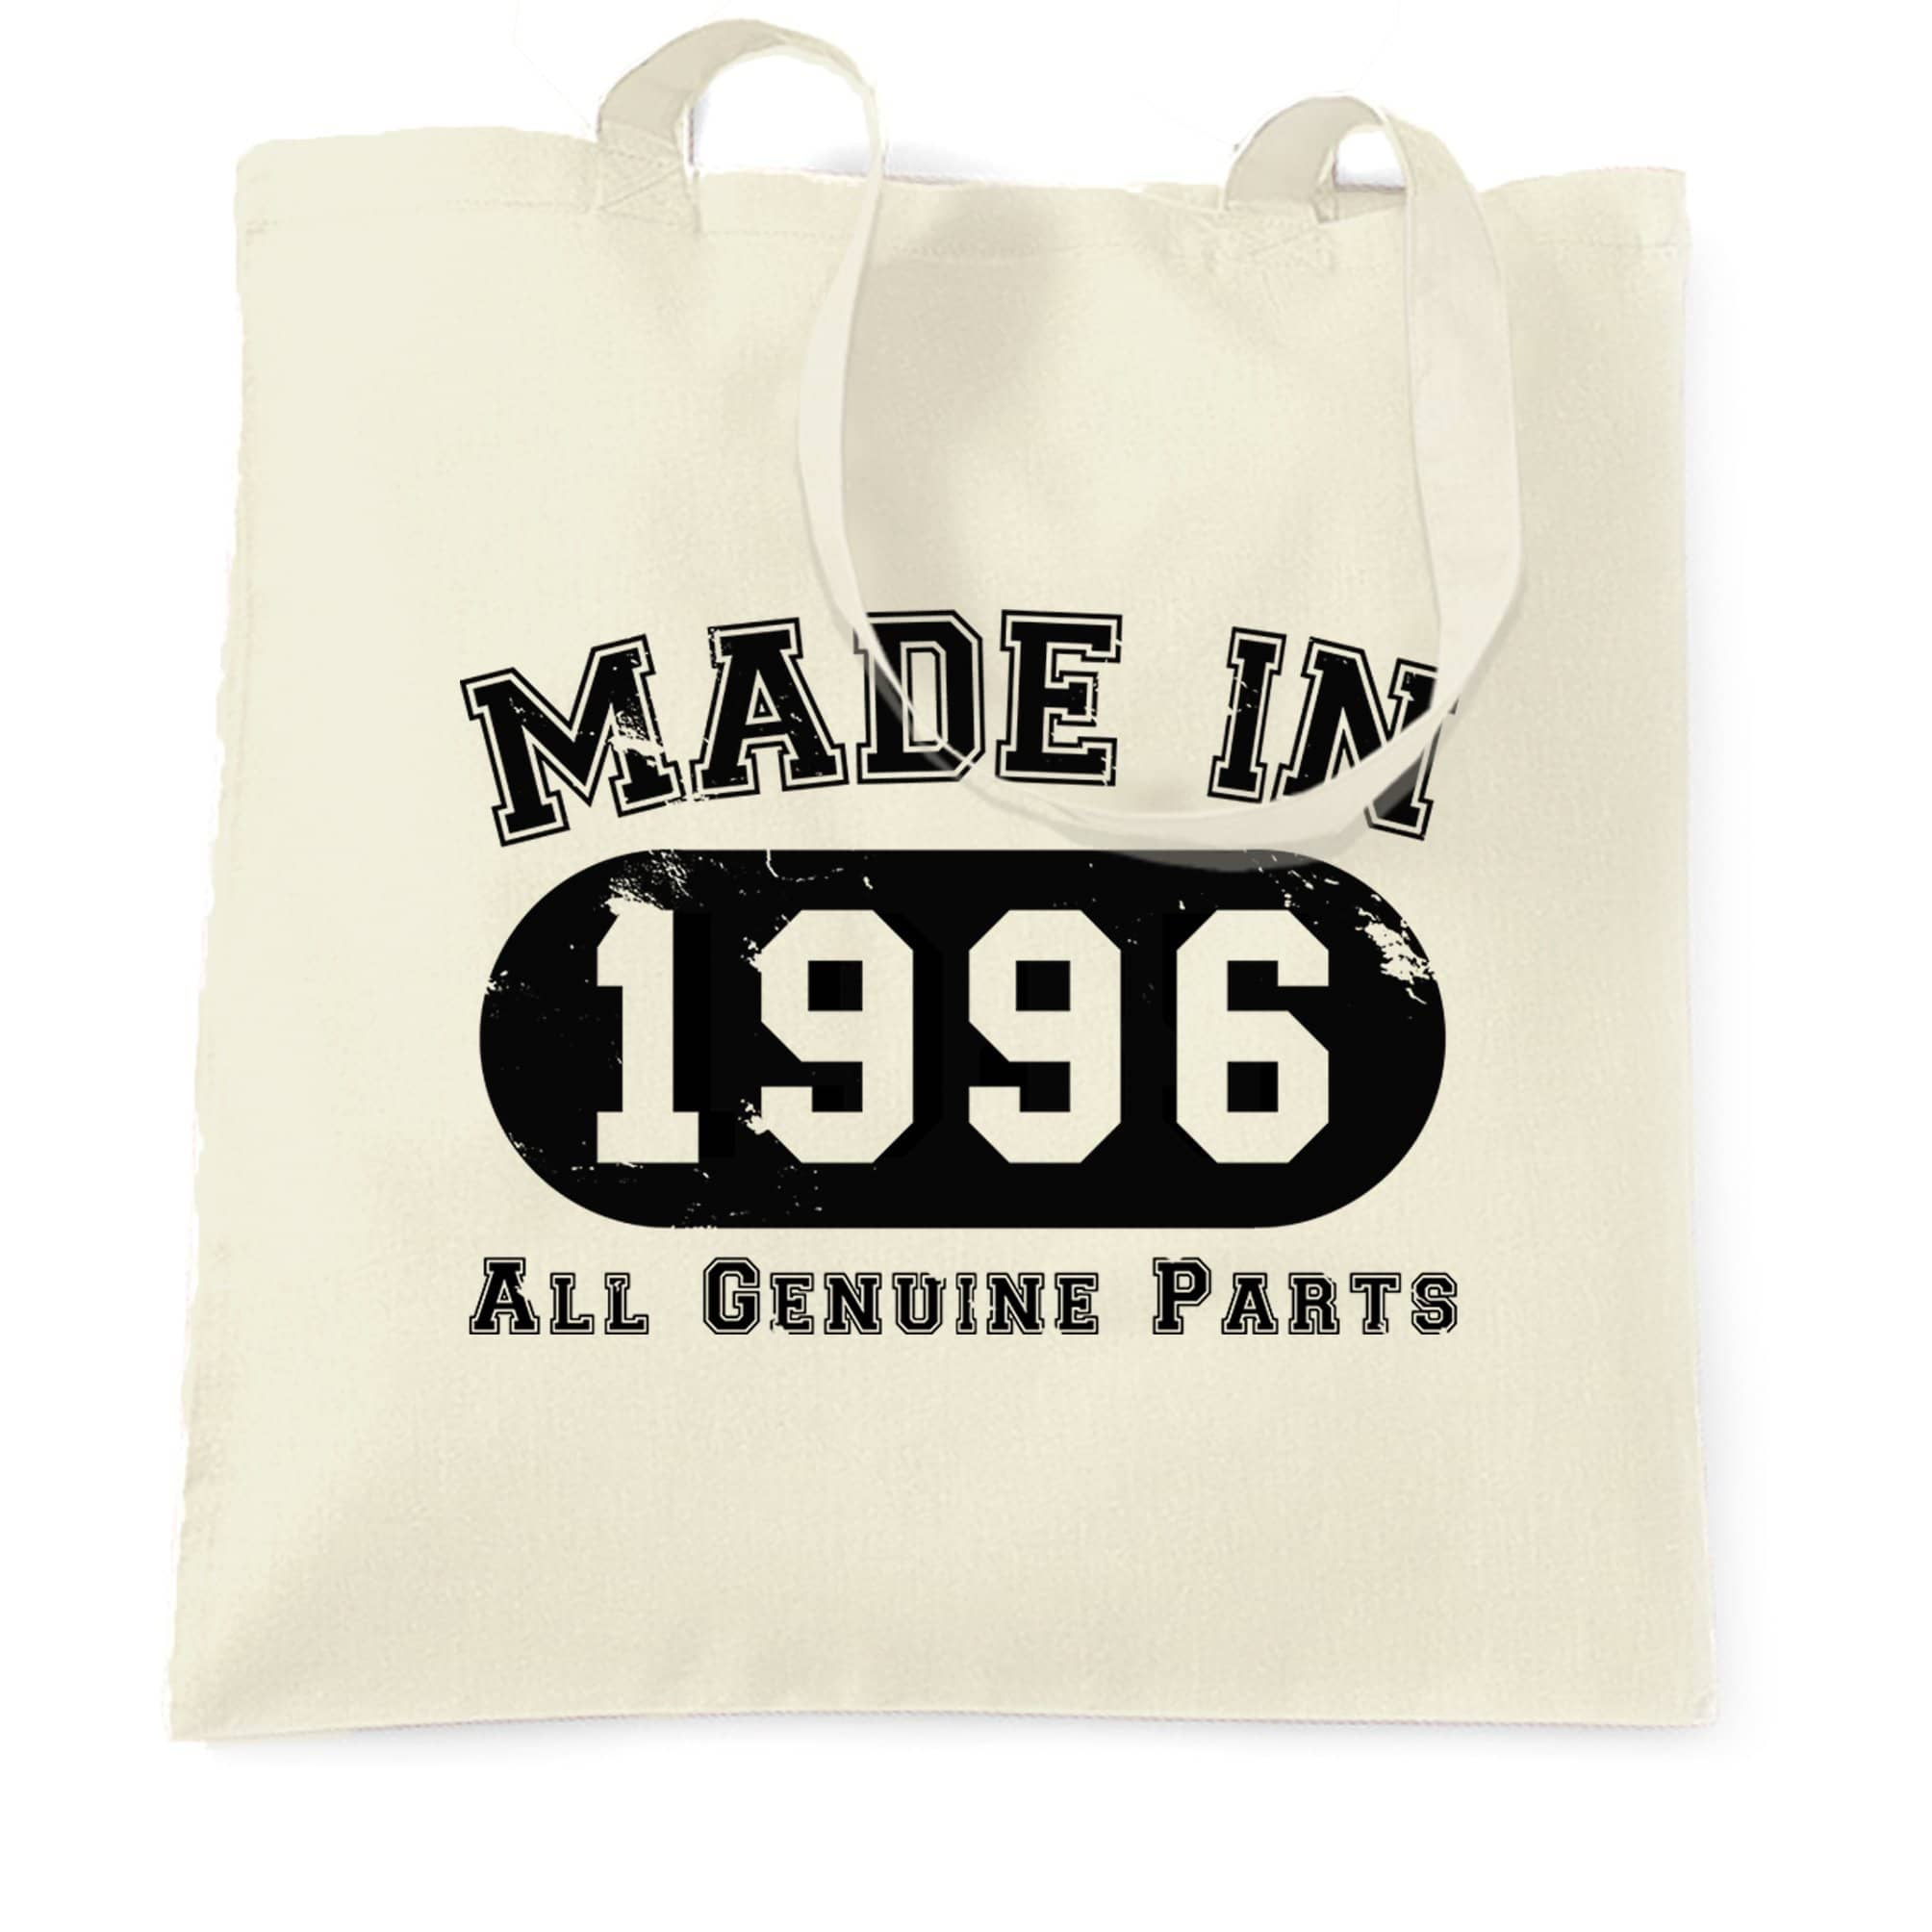 Birthday Tote Bag Made in 1996 All Genuine Parts